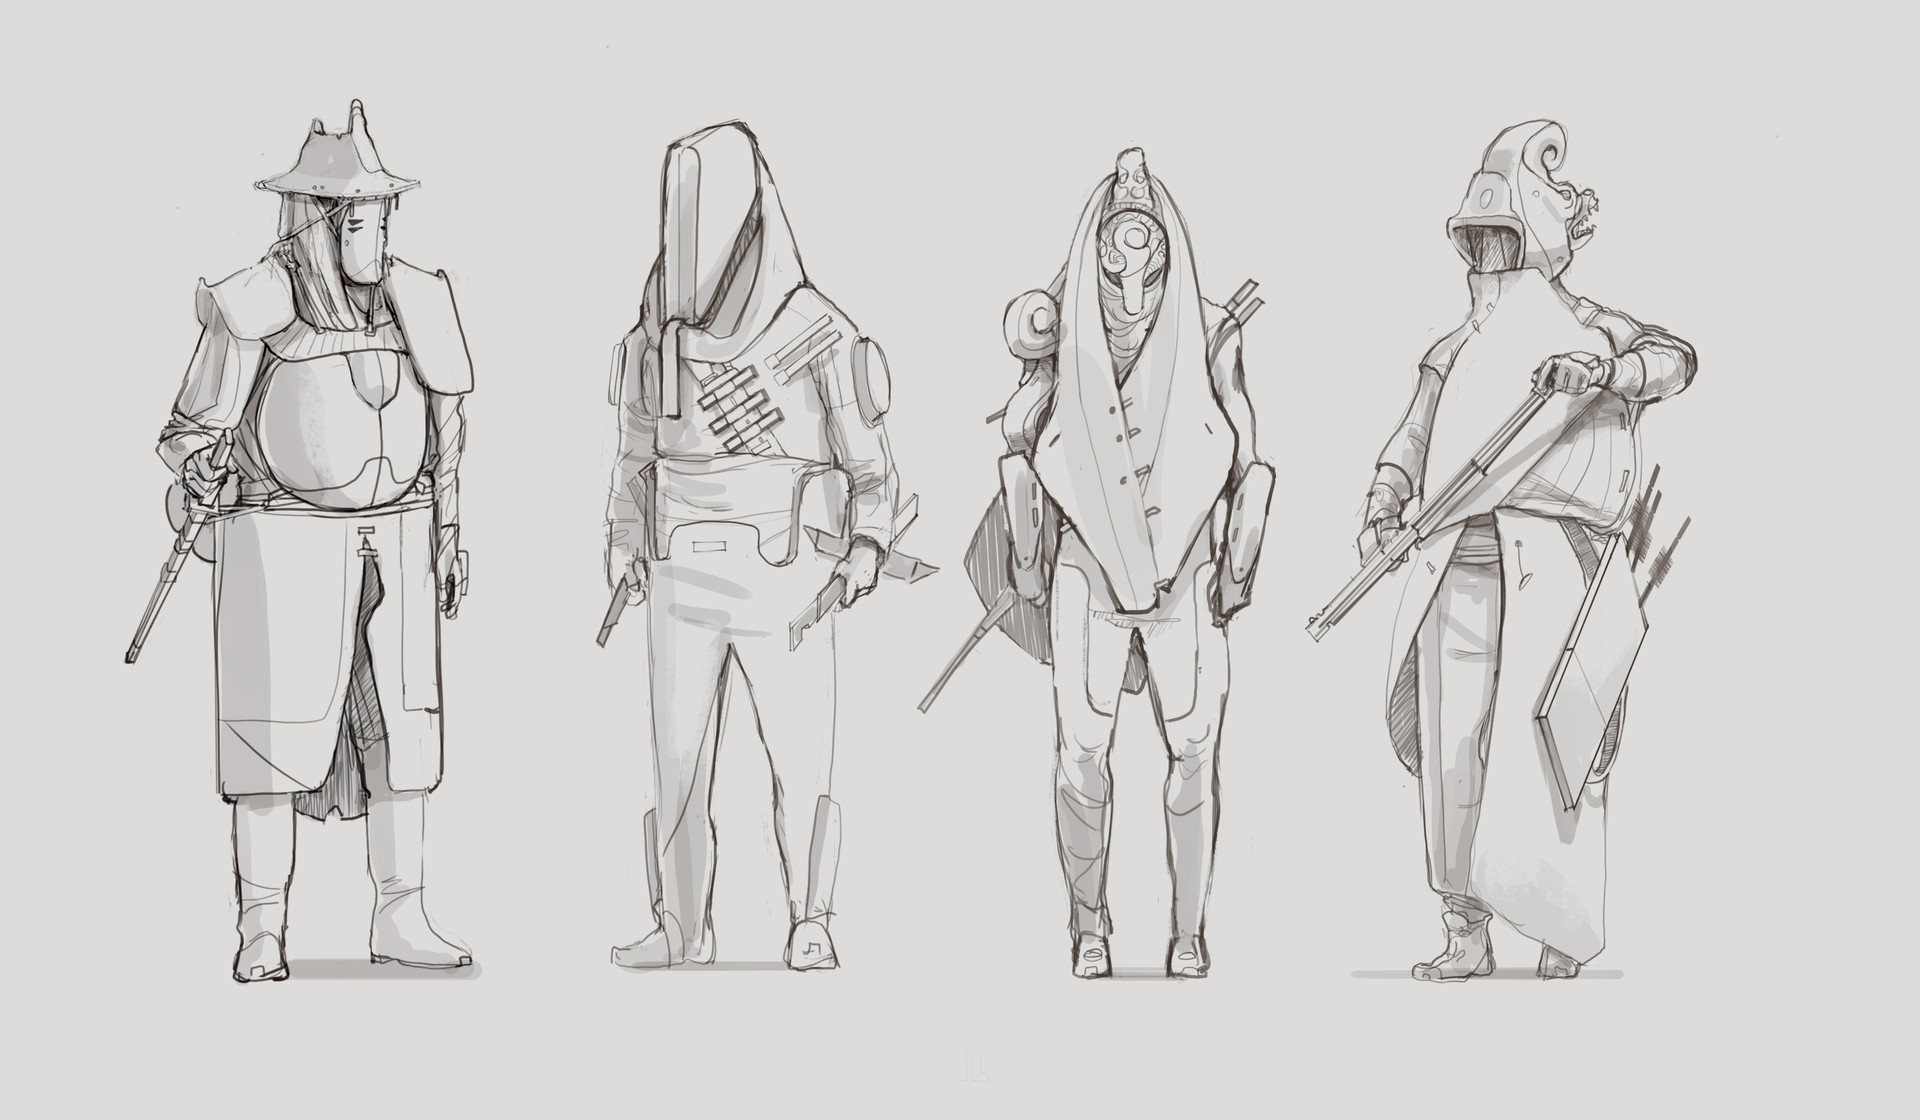 Edison moody player character sketches 2